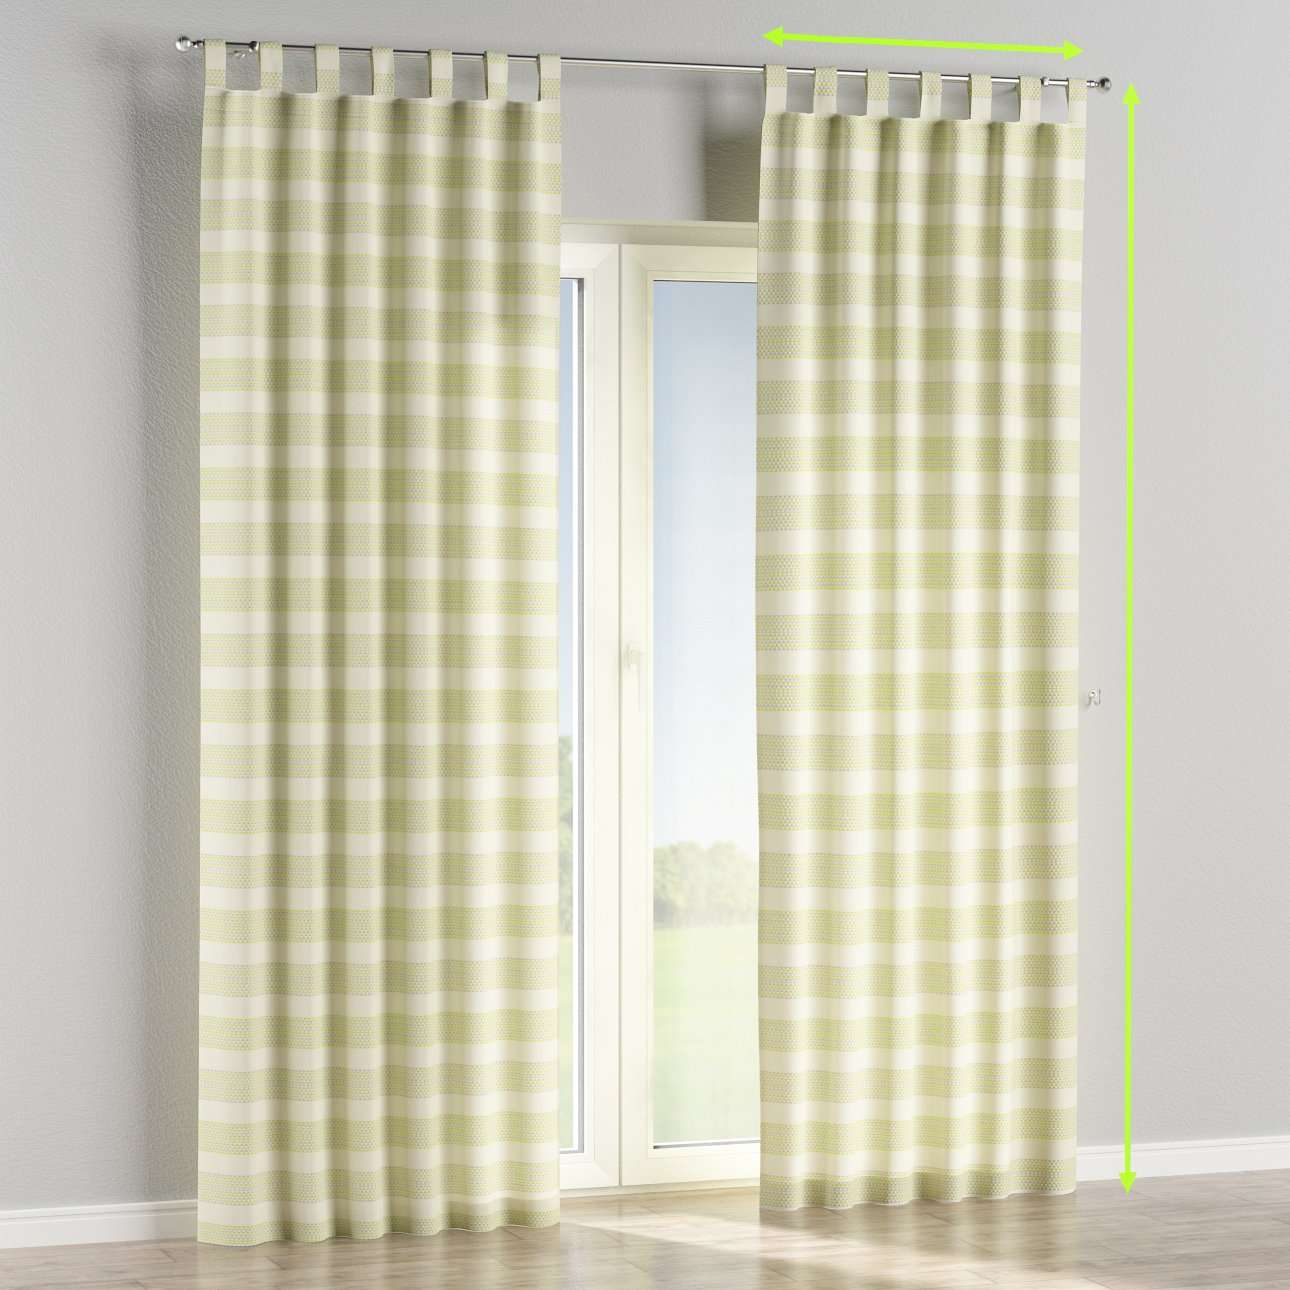 Tab top lined curtains in collection Rustica, fabric: 140-35